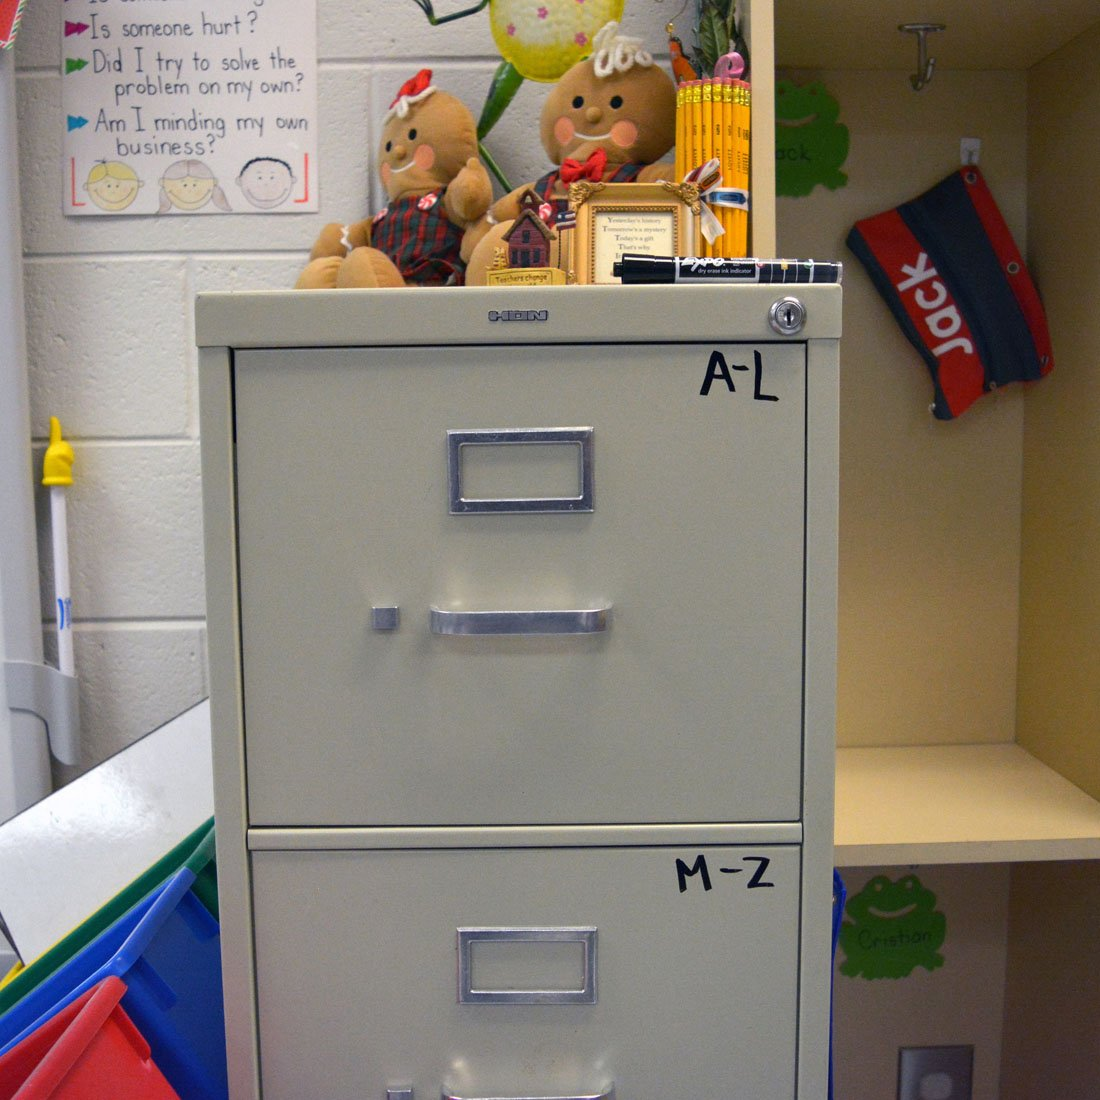 drawers-of-filing-cabinet-labeled-by-alphabet.jpg